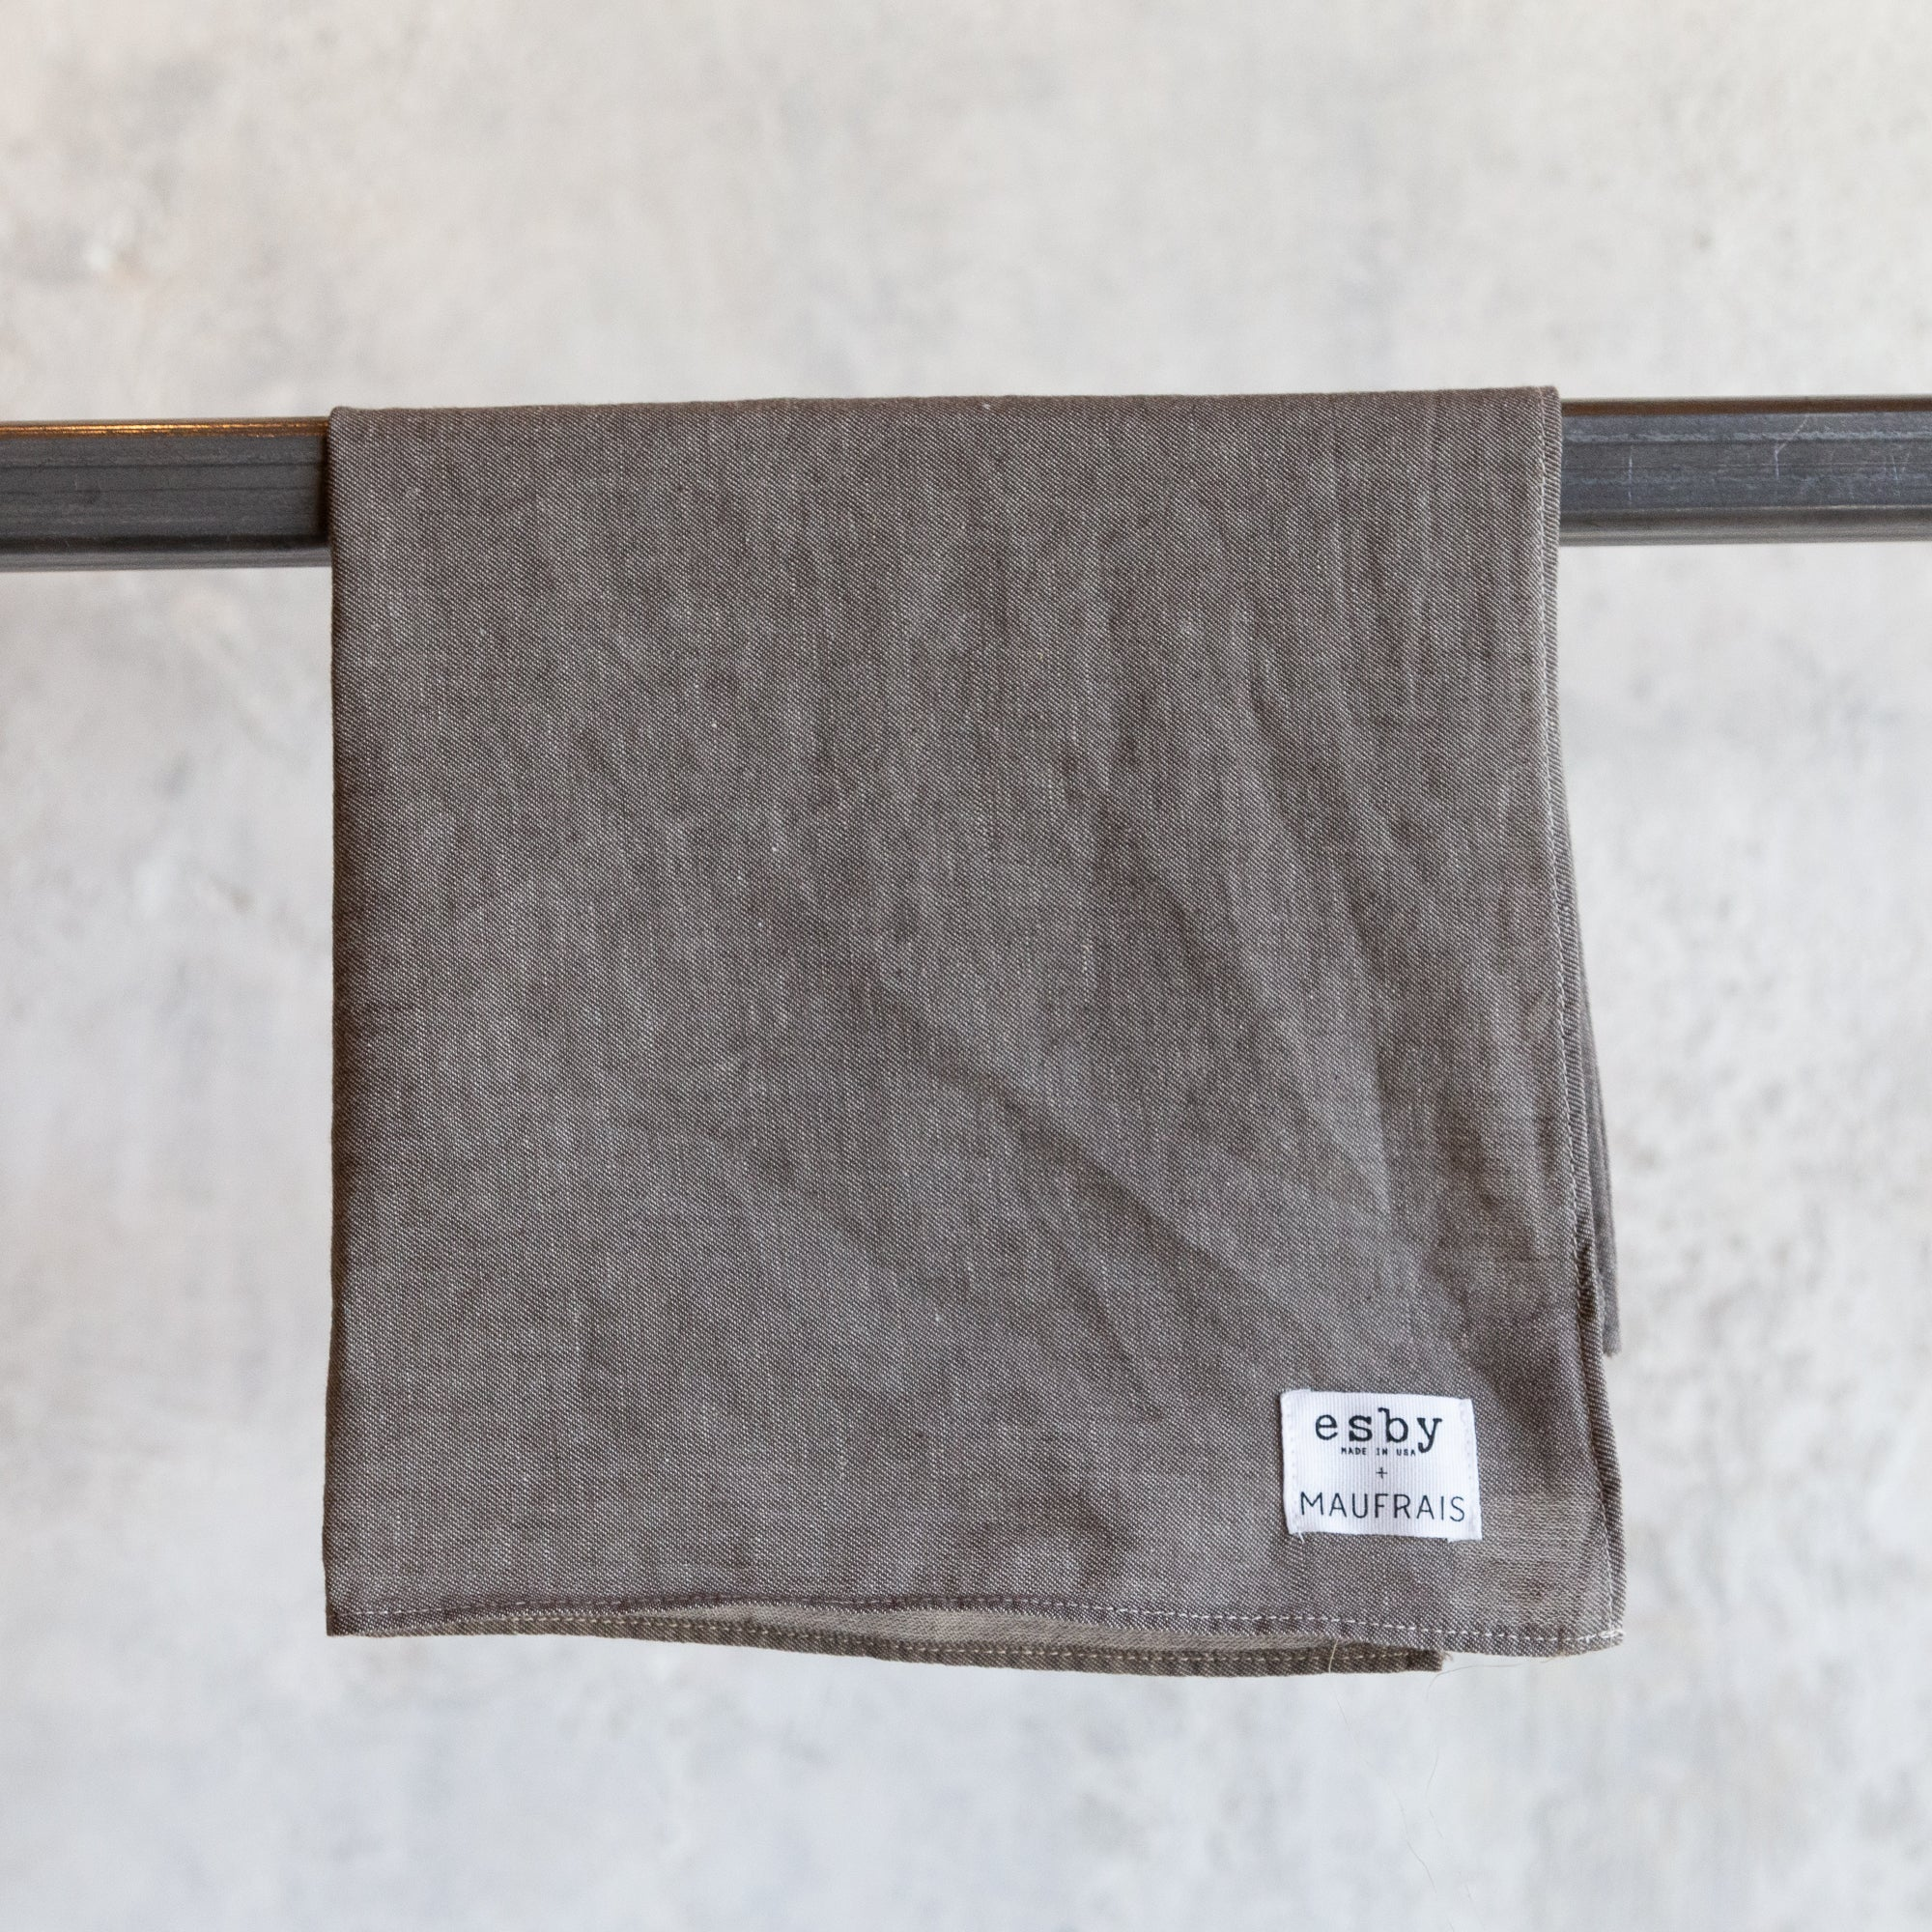 esby x maufrais Collaboration Bandana - Light Brown